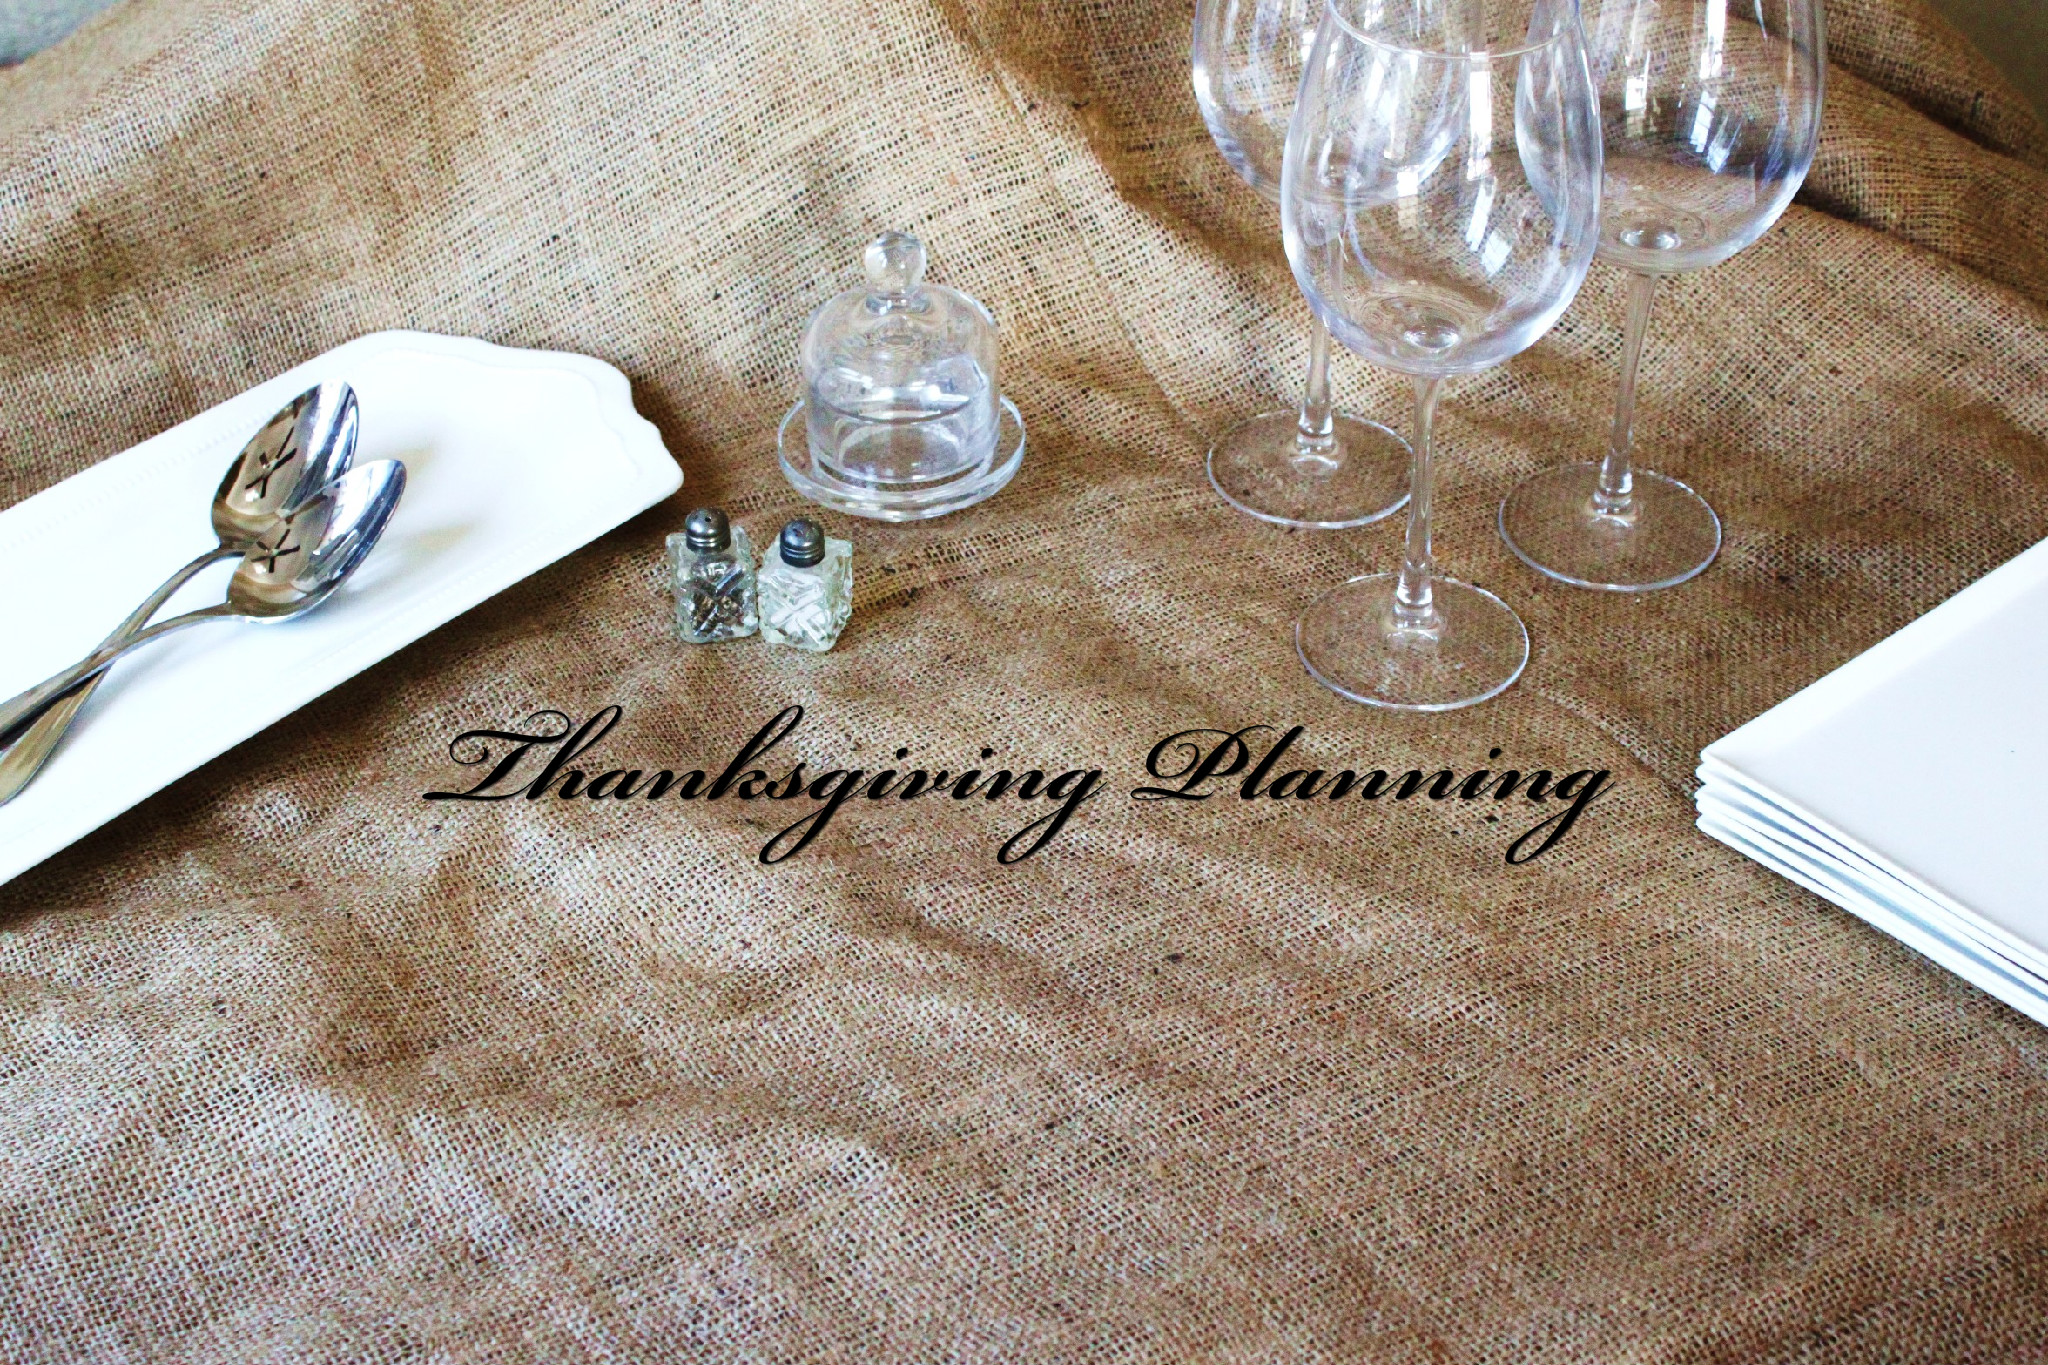 thanksgiving planning